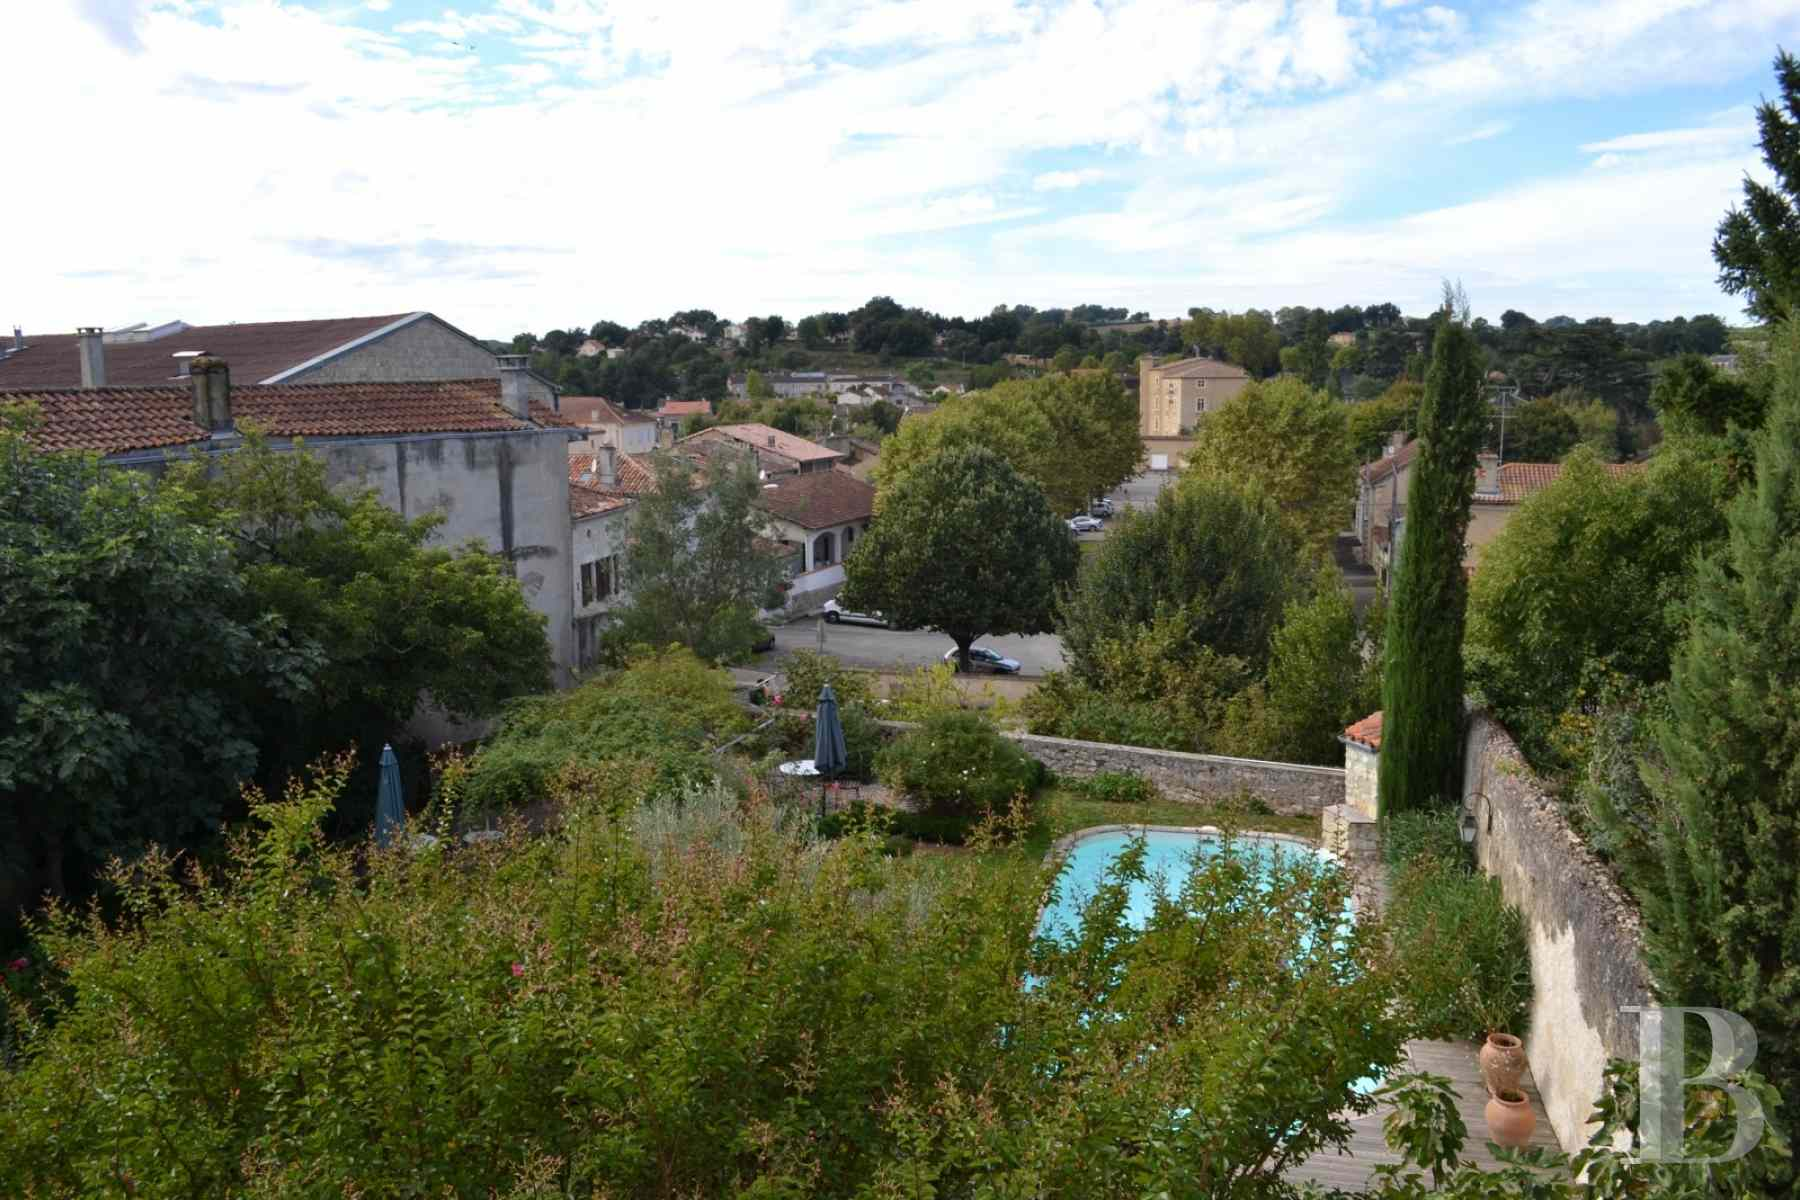 property for sale France midi pyrenees town centre - 18 zoom